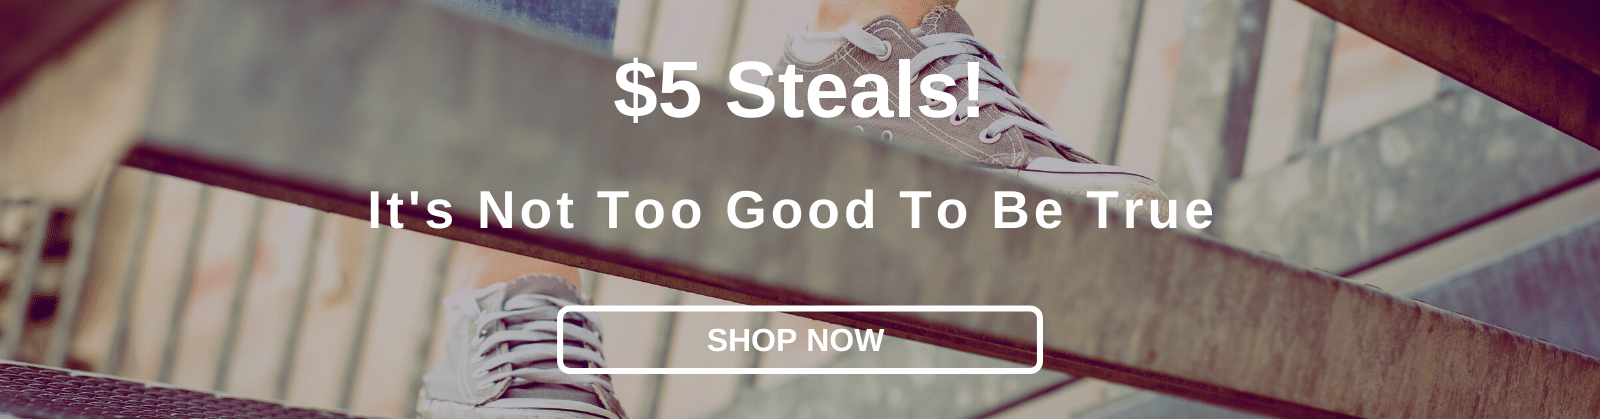 $5 Steals! It's Not Too Good To Be True [Shop Now]